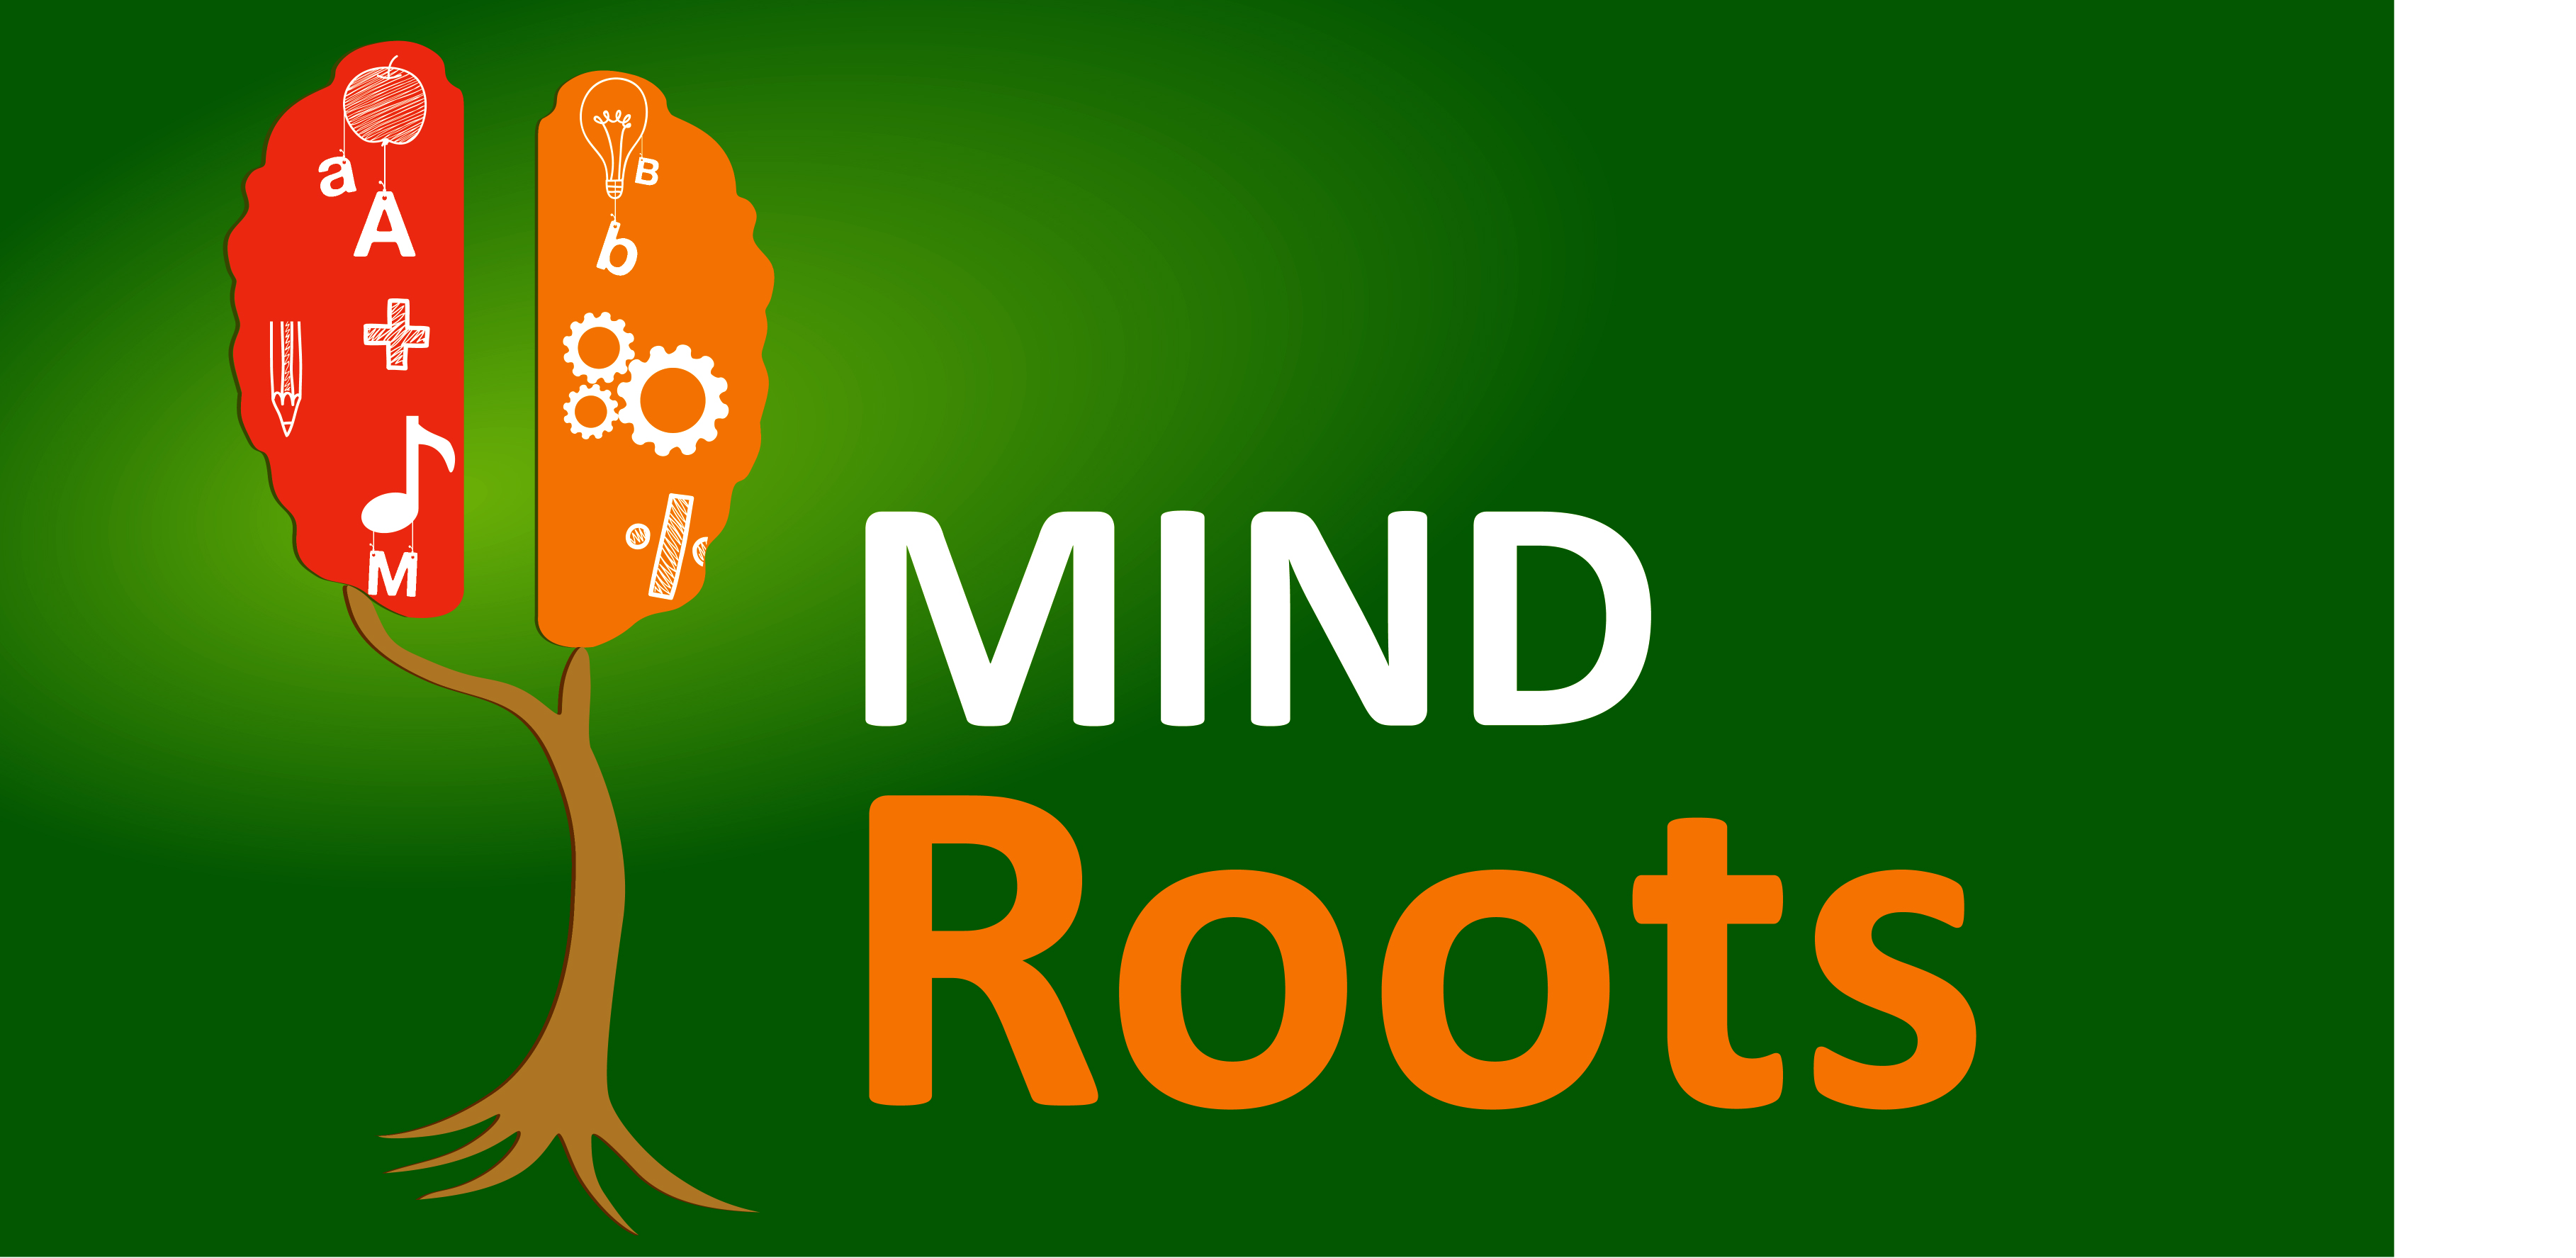 Mind Roots